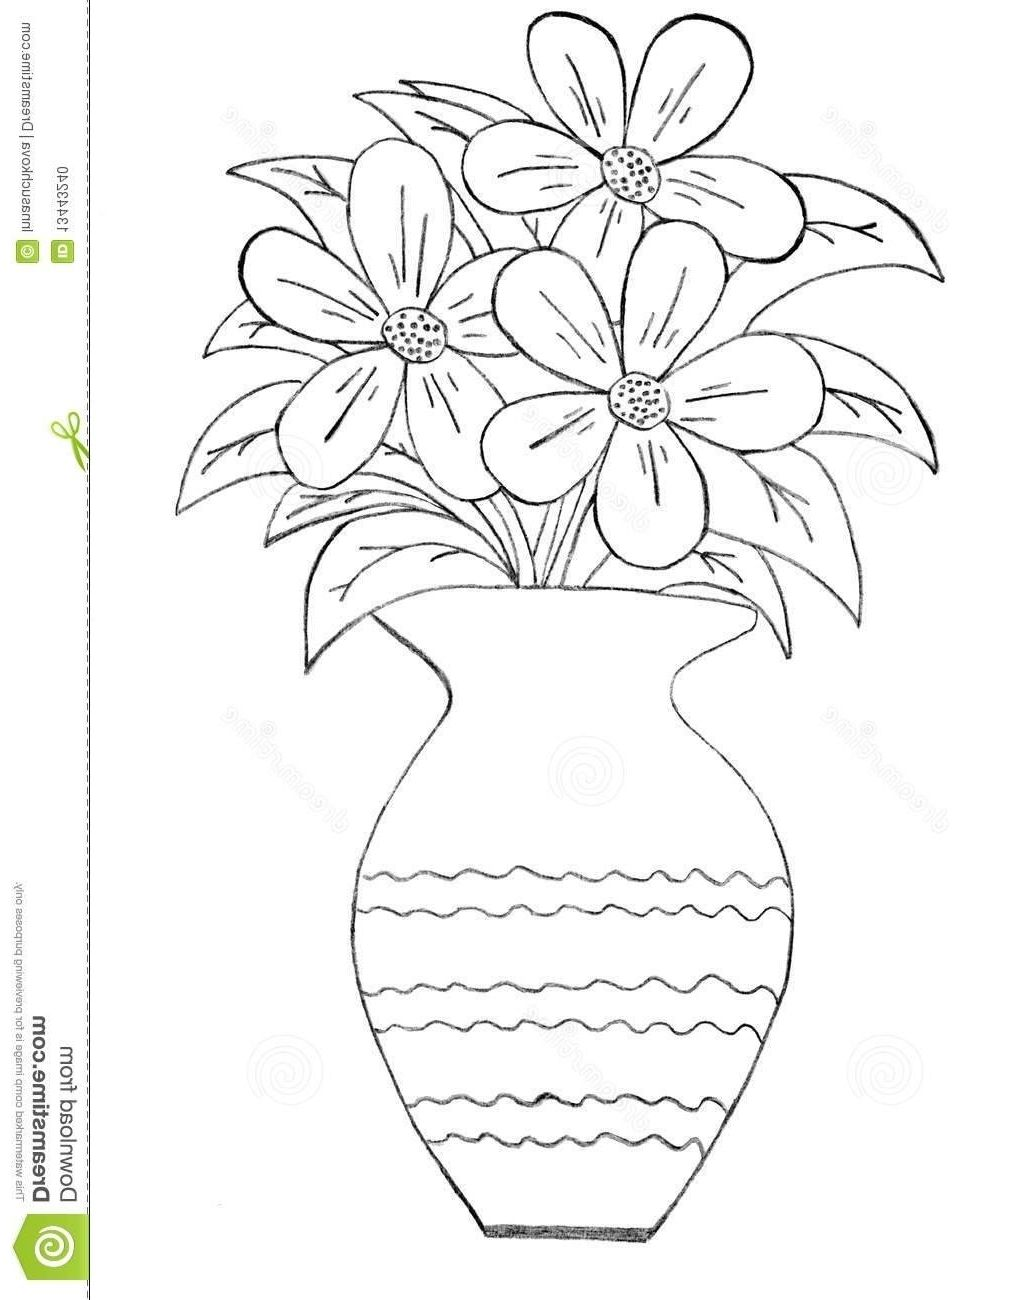 Flower Vase Sketch Images